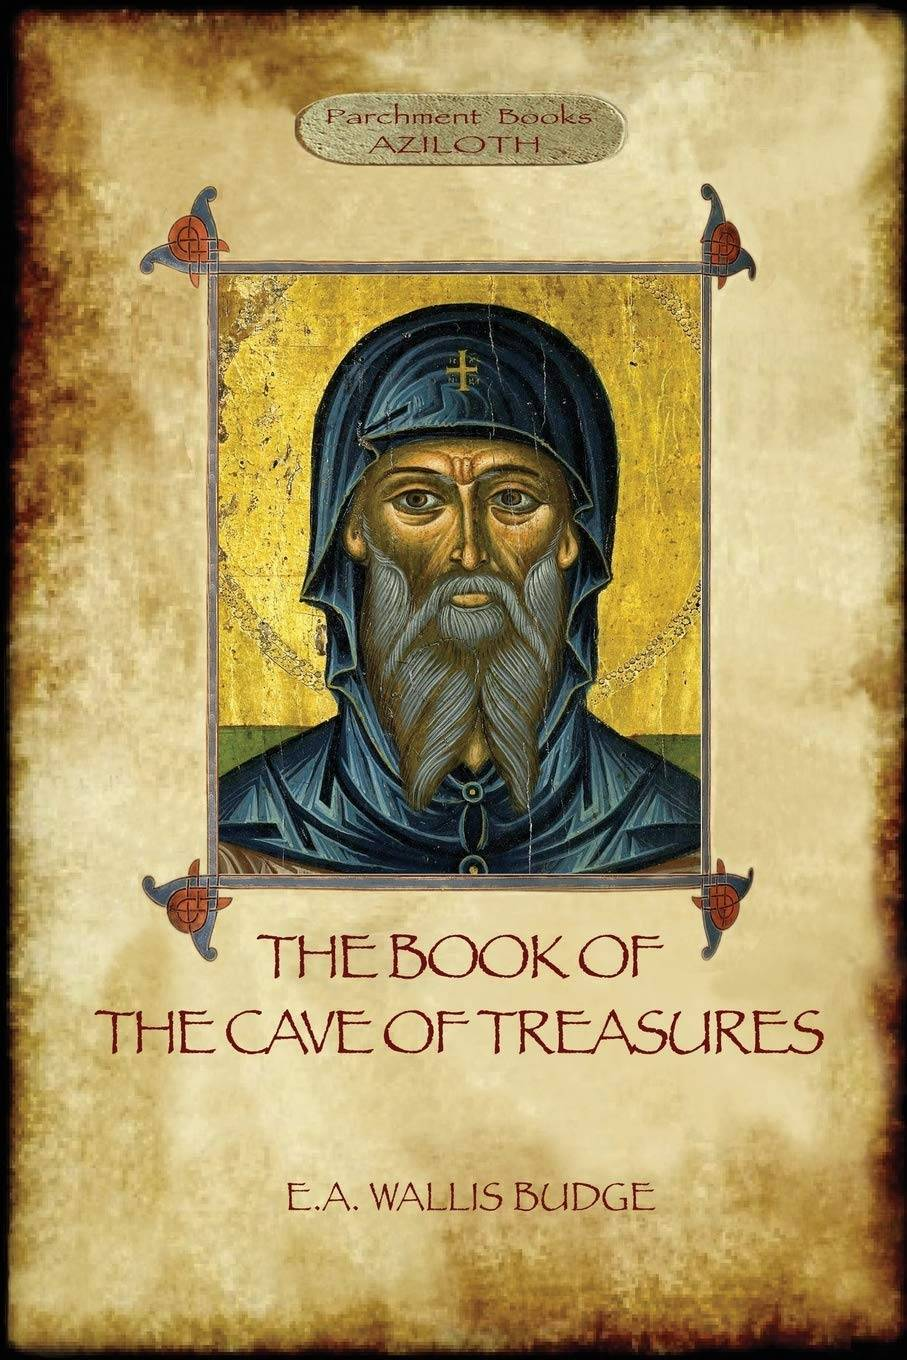 The Book of the Cave of Treasures by E. A. Wallis Budge PDF